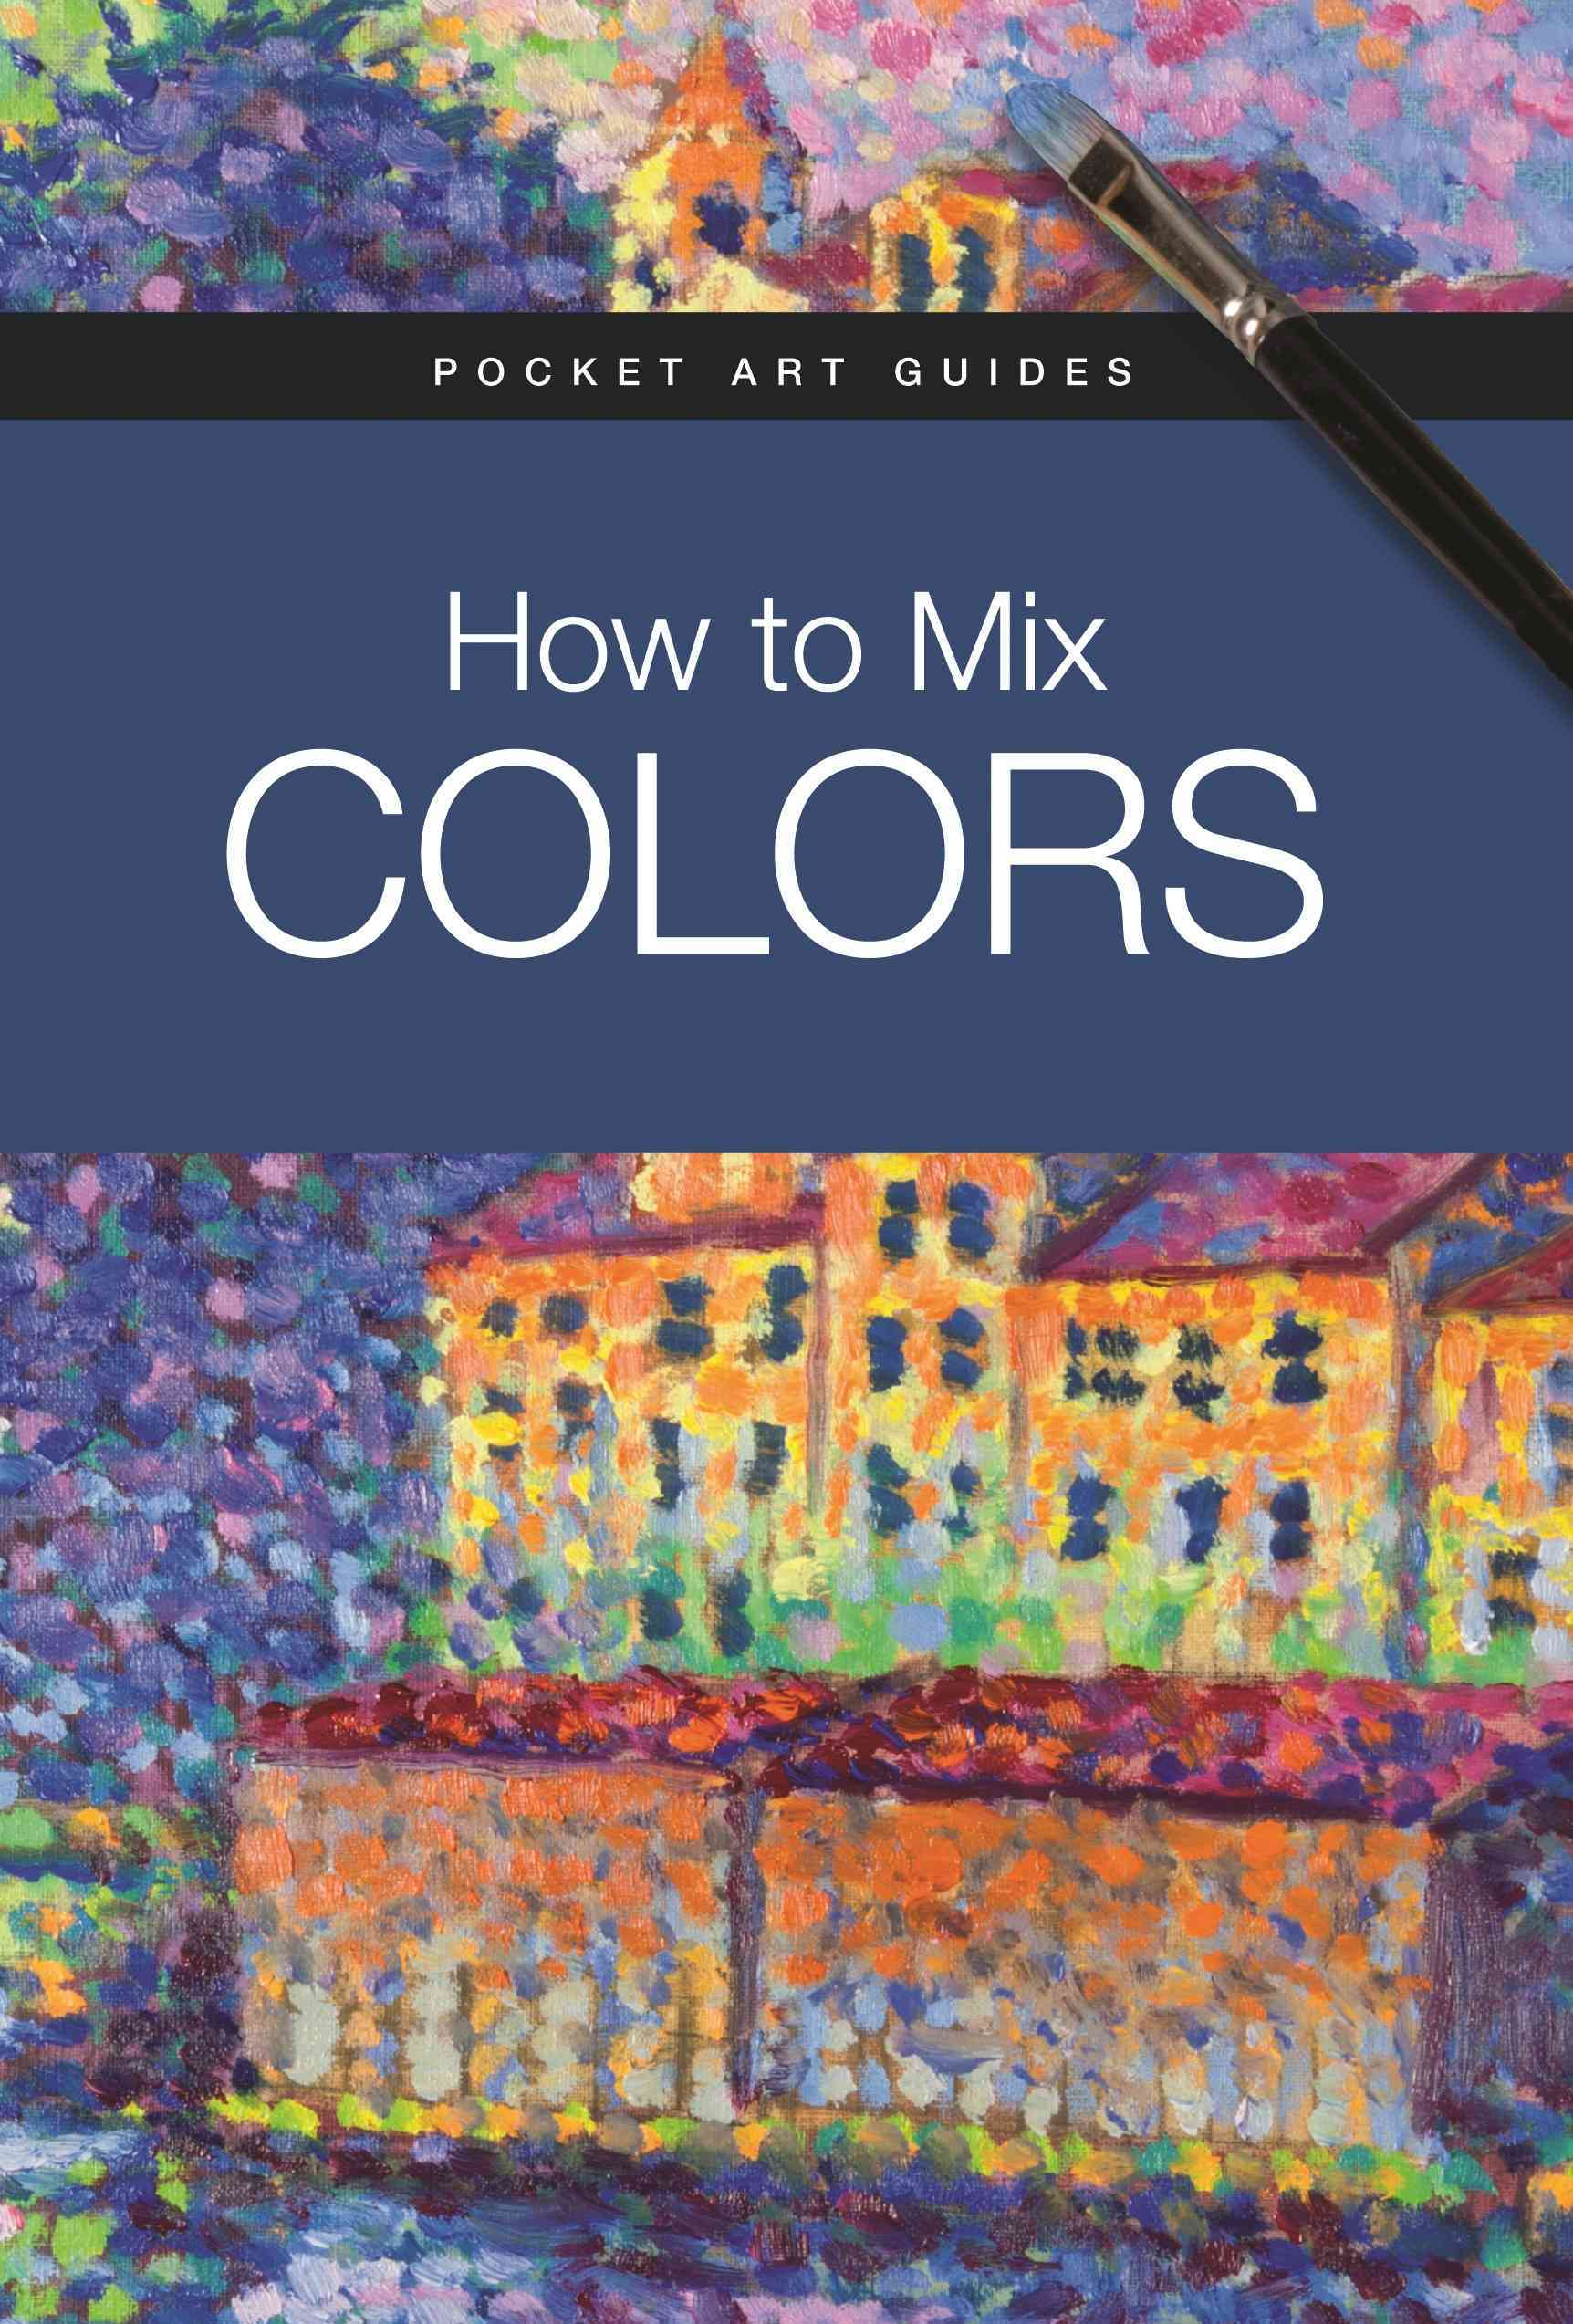 How to Mix Colors By Parram=n Editorial Team